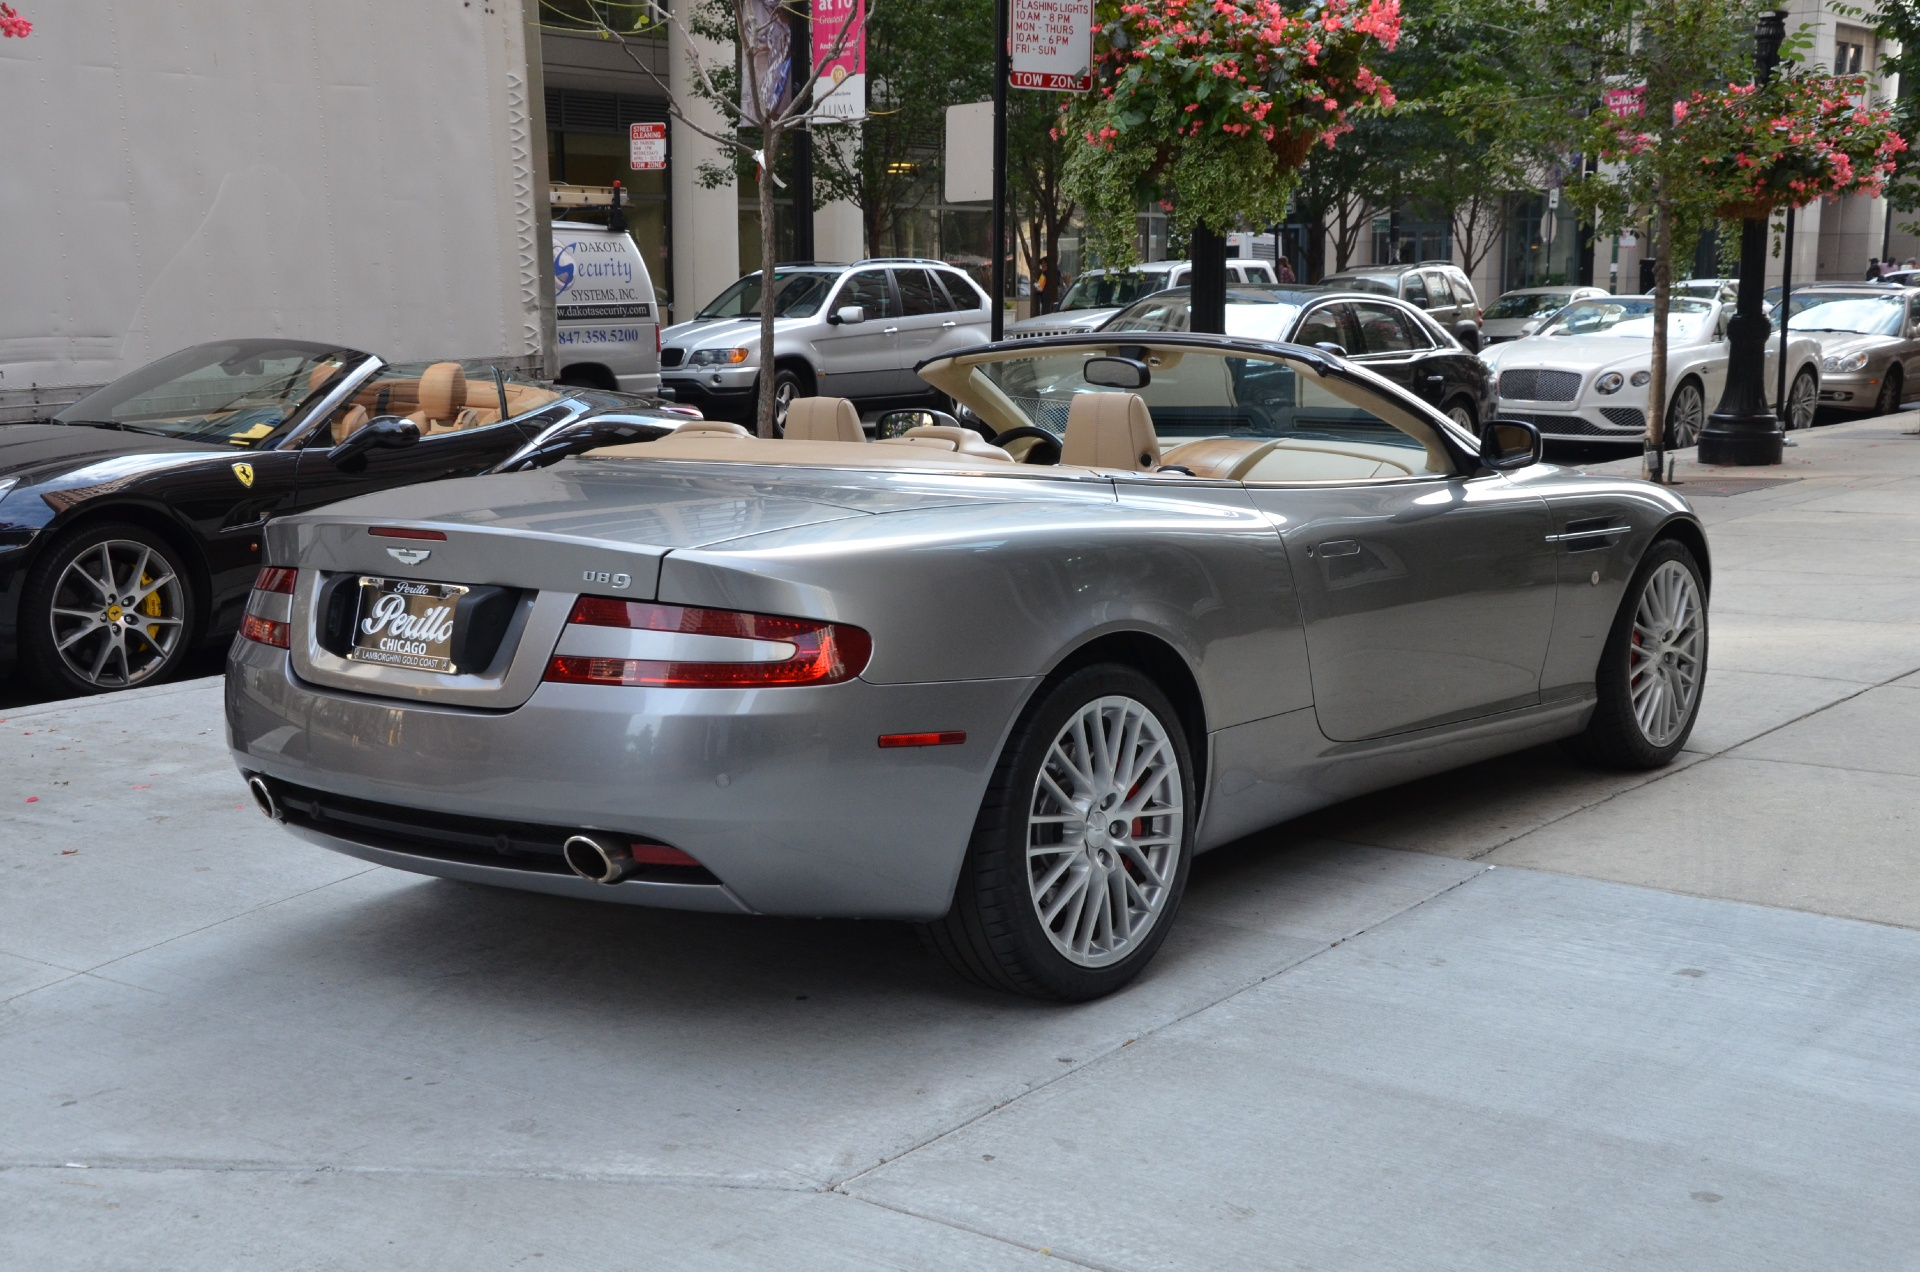 2009 aston martin db9 volante stock gc1564a for sale near chicago il il aston martin dealer. Black Bedroom Furniture Sets. Home Design Ideas